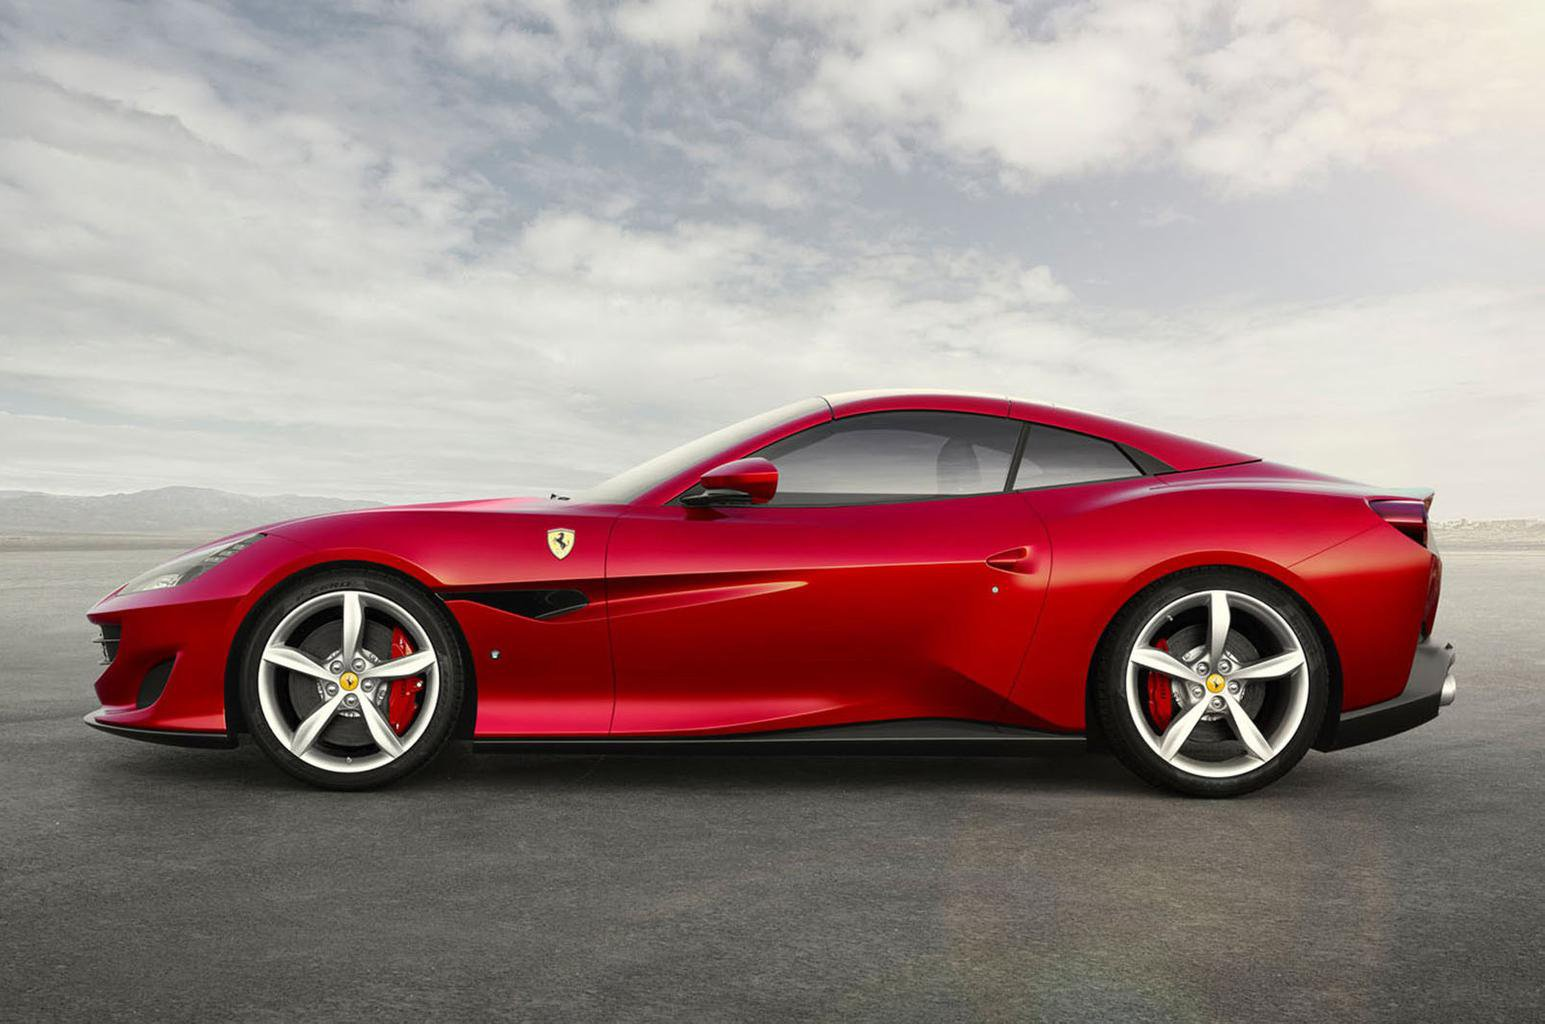 New Ferrari Portofino revealed – prices, specs and release date